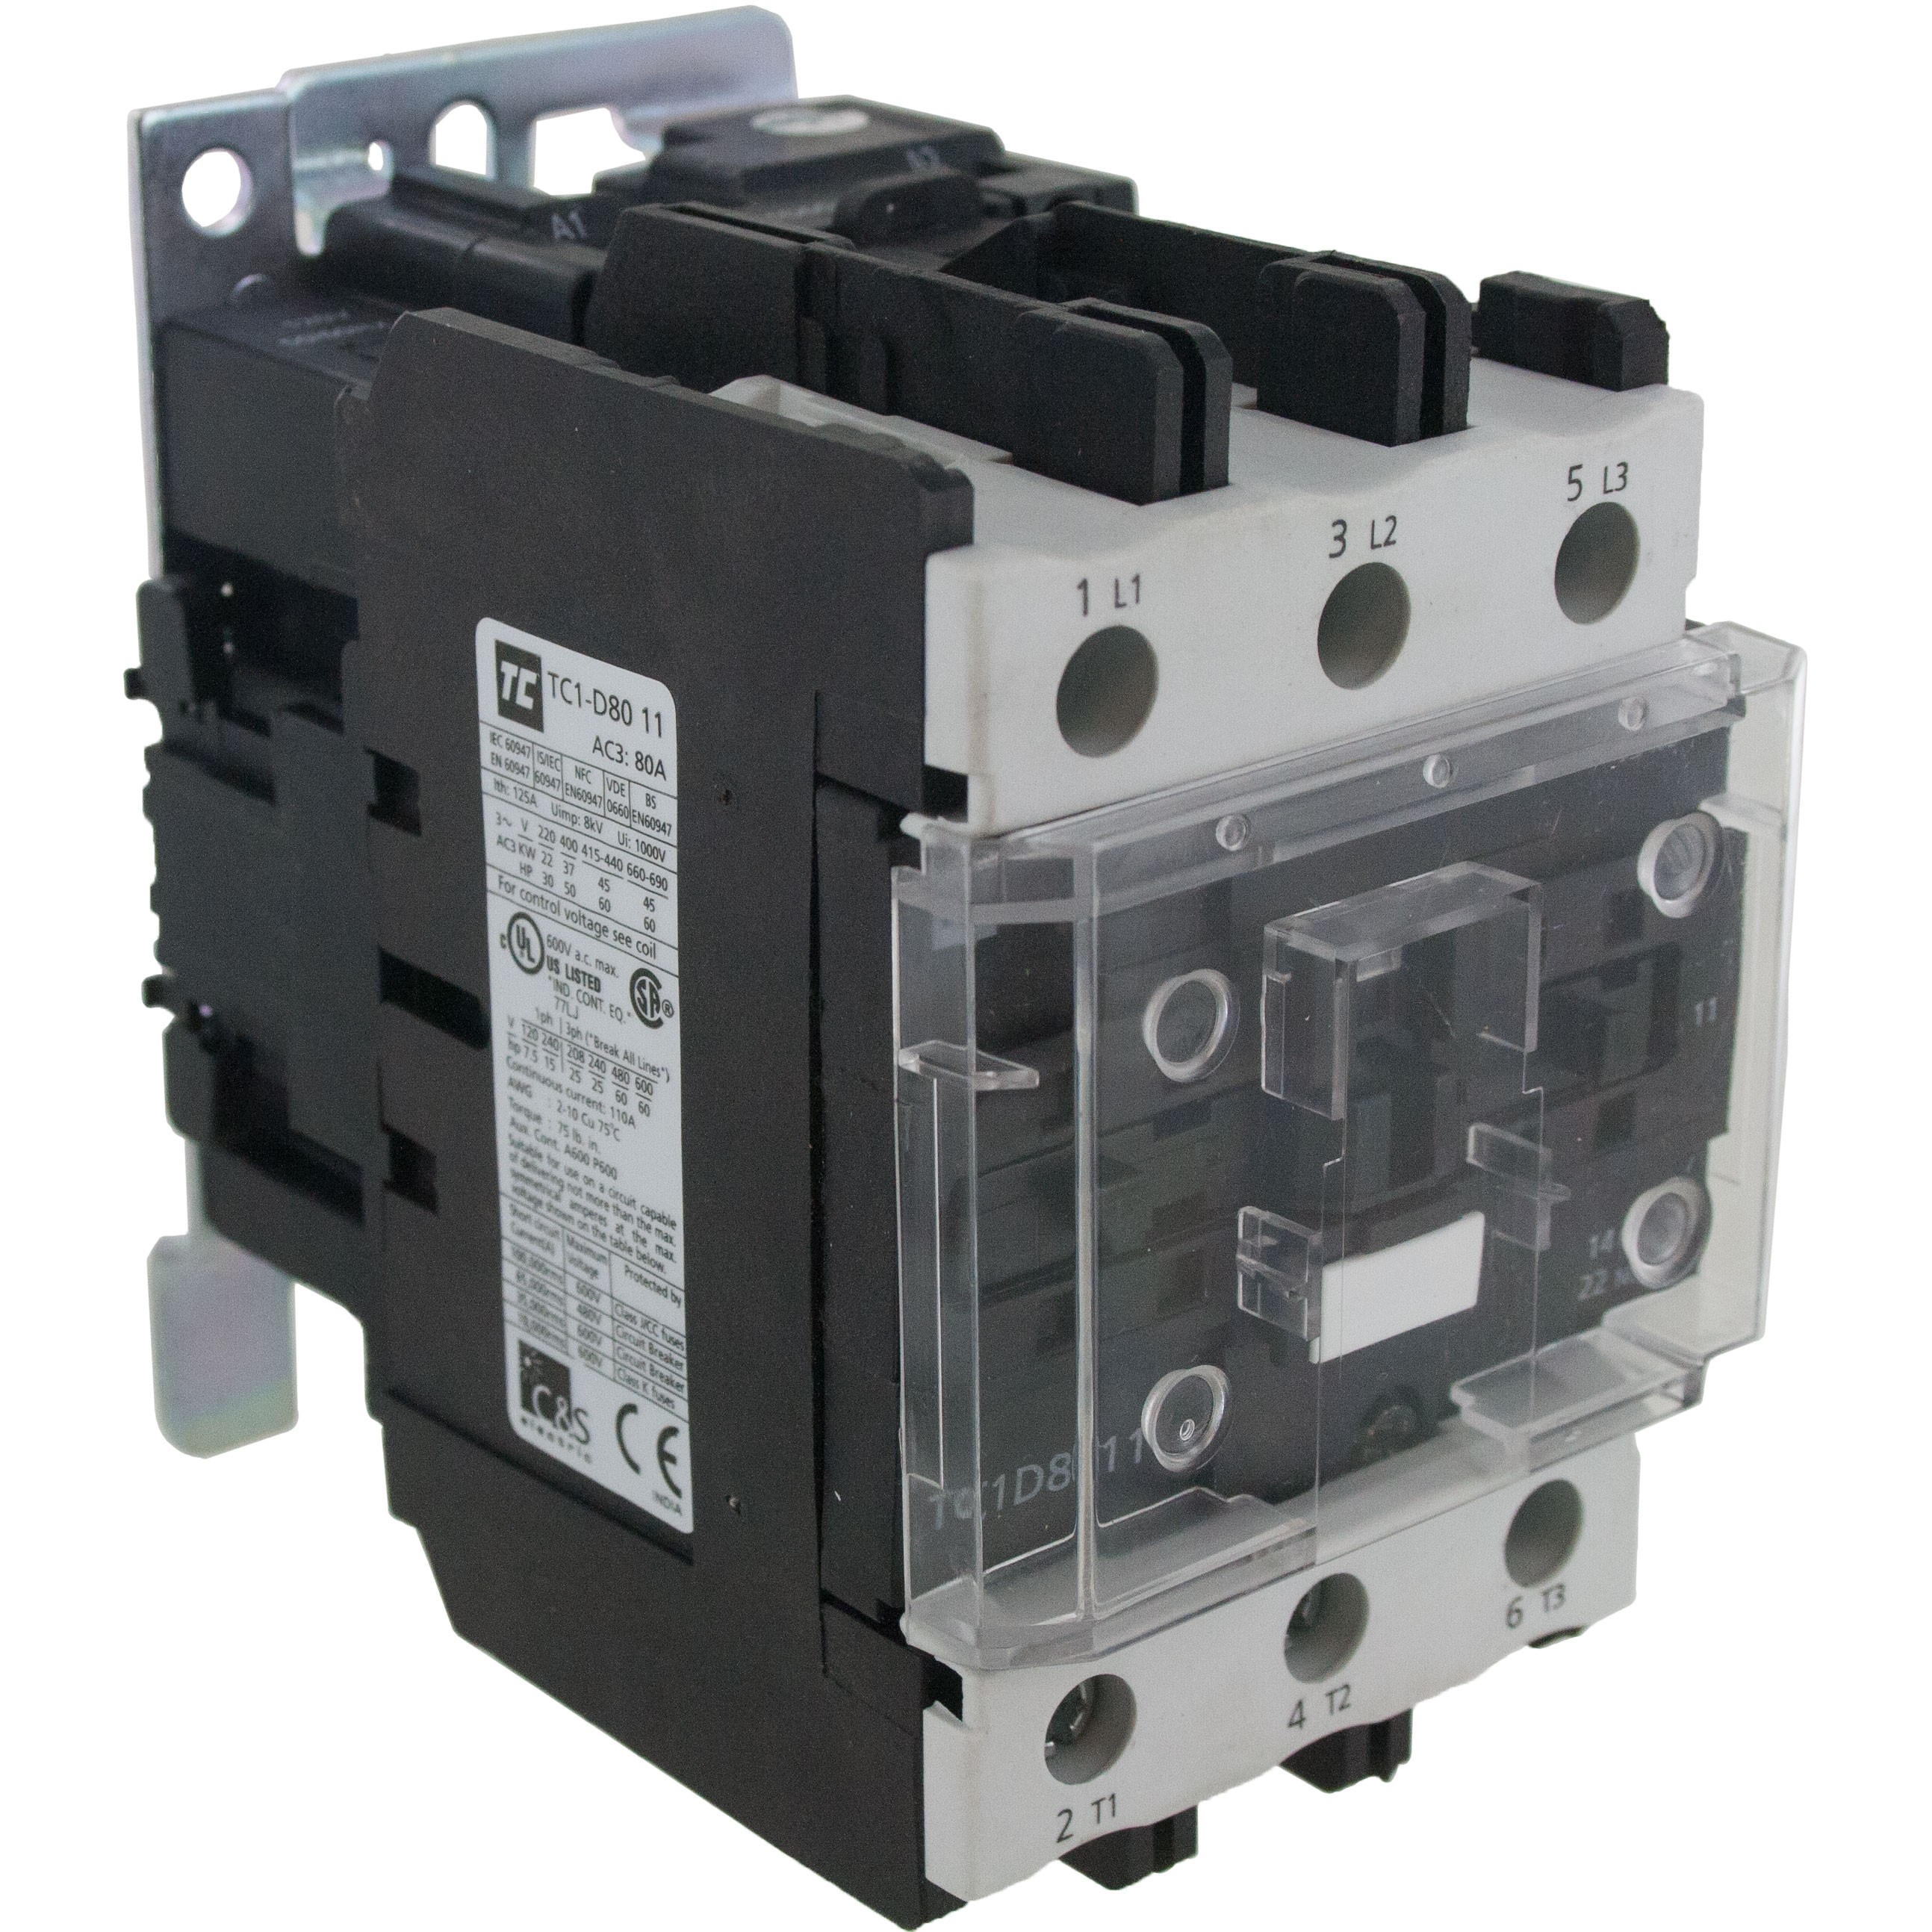 3 Pole Contactor 80 Amp 1 N/O - 1 N/C 415 Volt AC Coil Angle